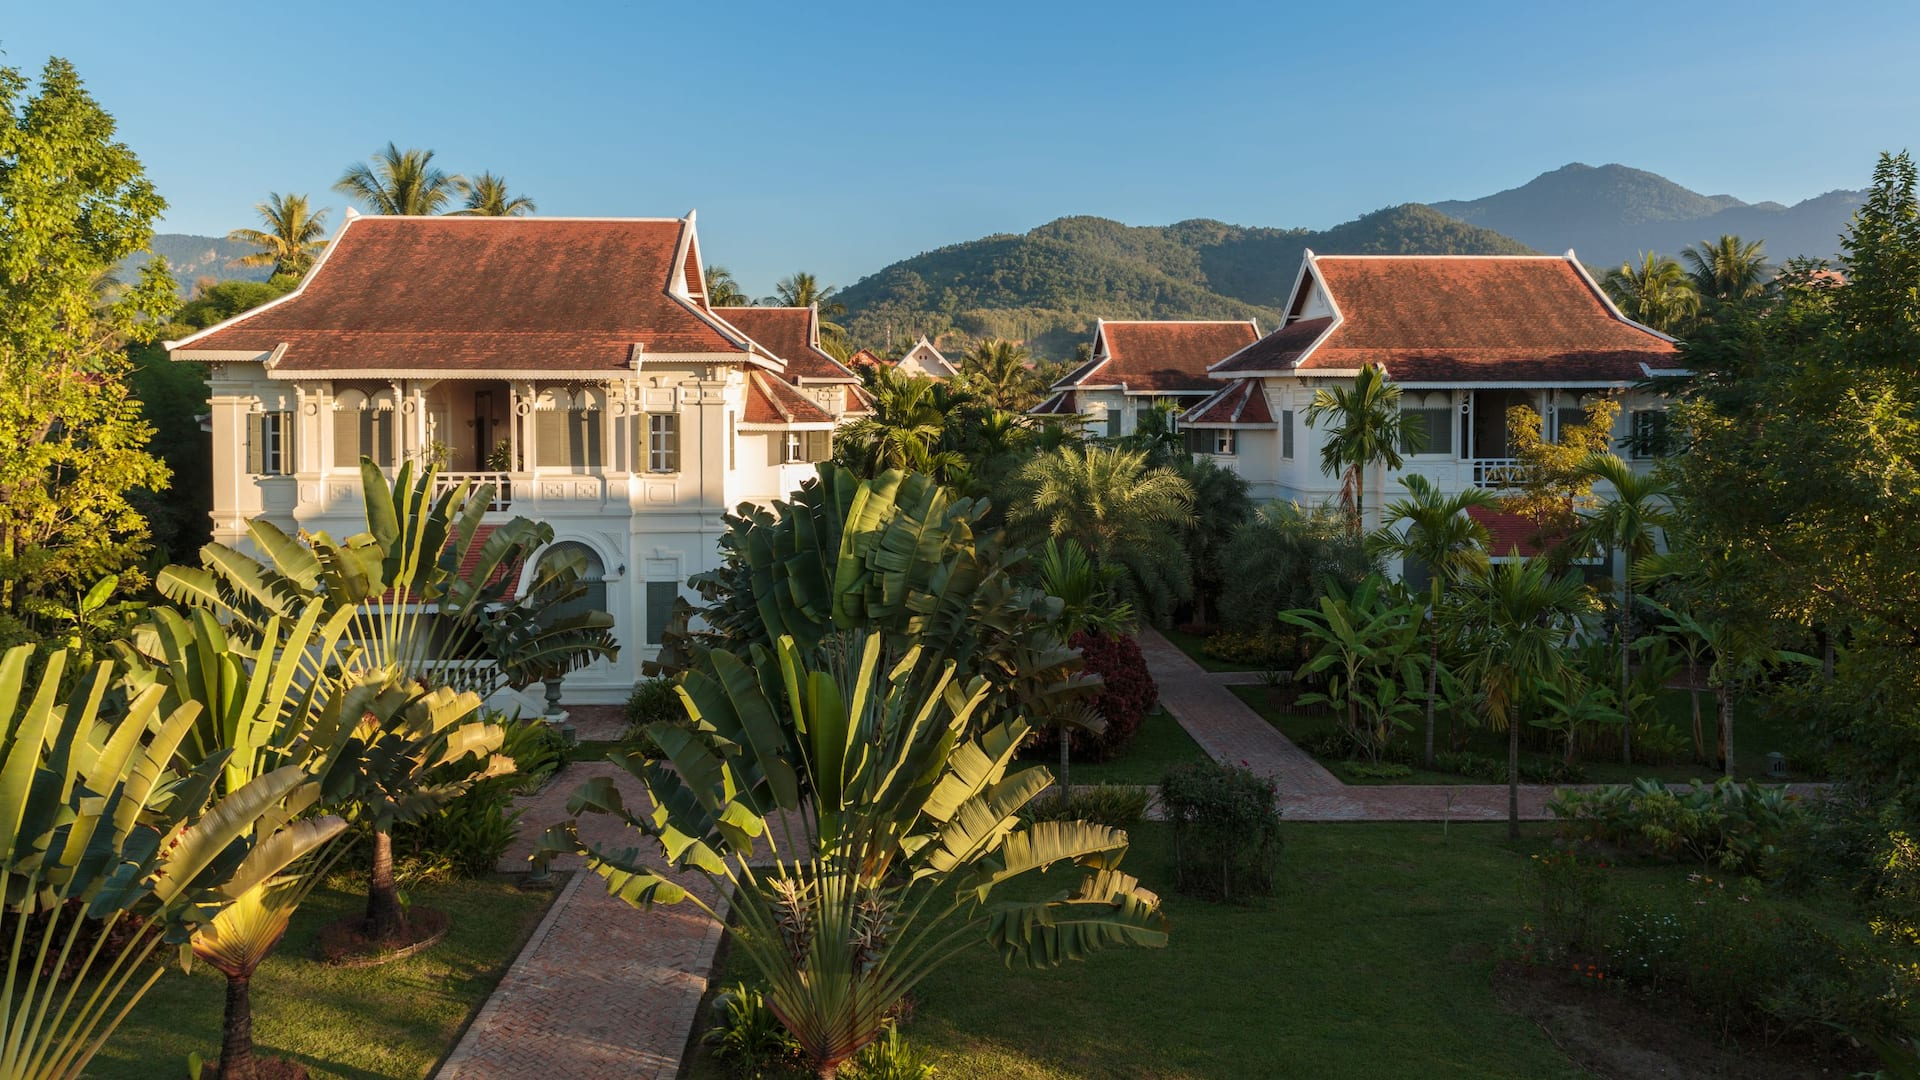 14,000 sqm of land in lush and tropical gardens